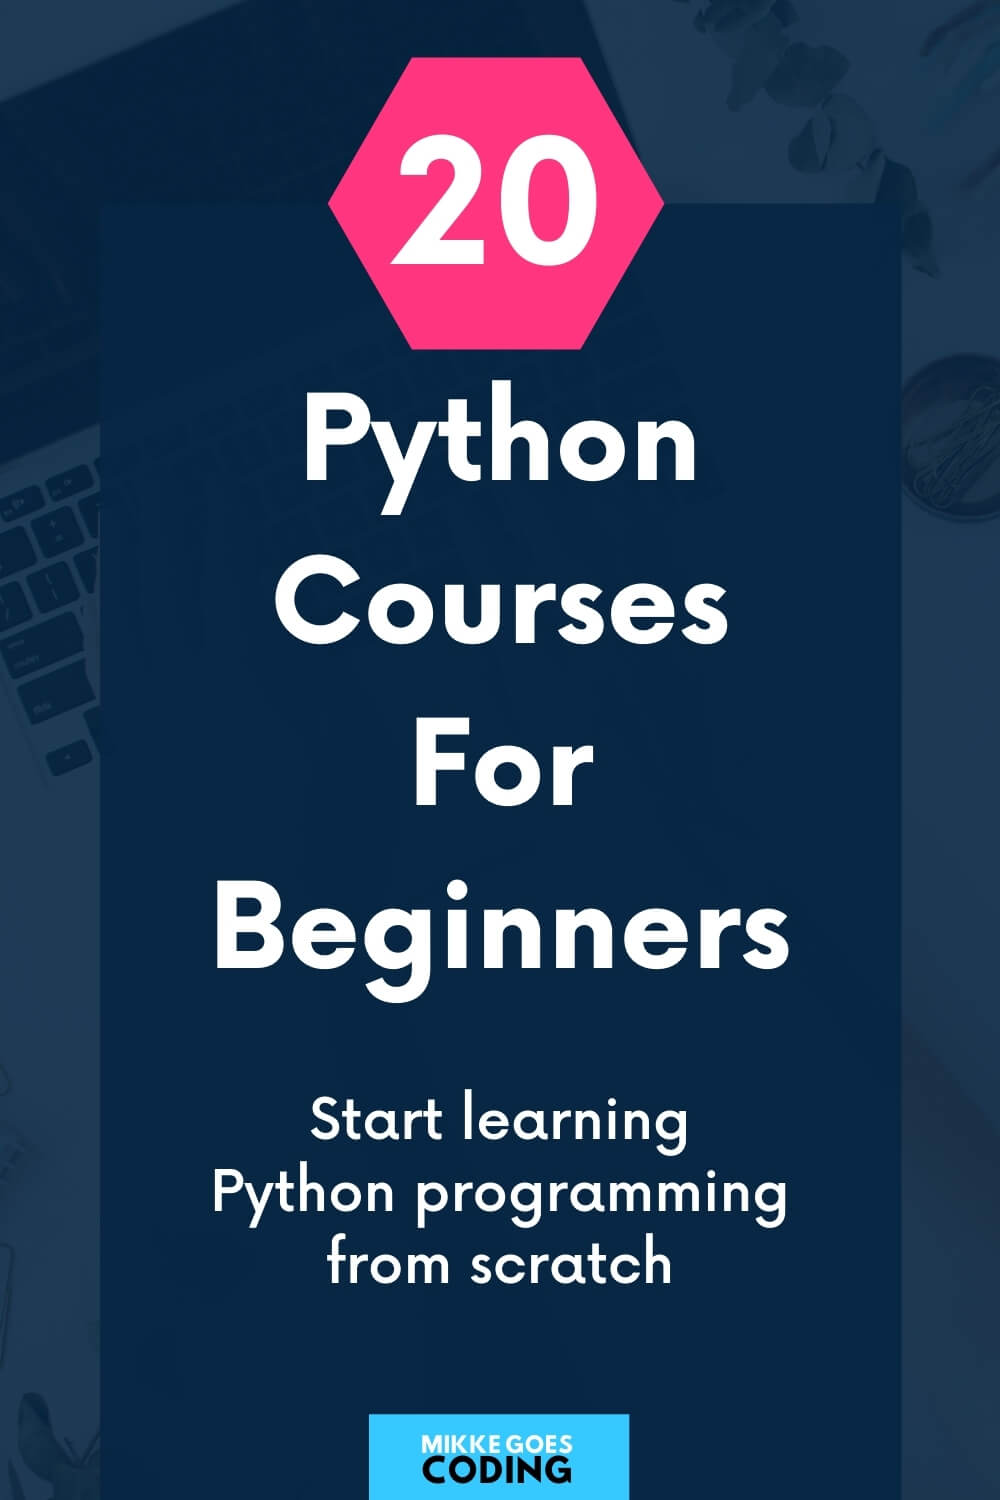 Learn Python Online: The Best Python Resources for Beginners in 2021